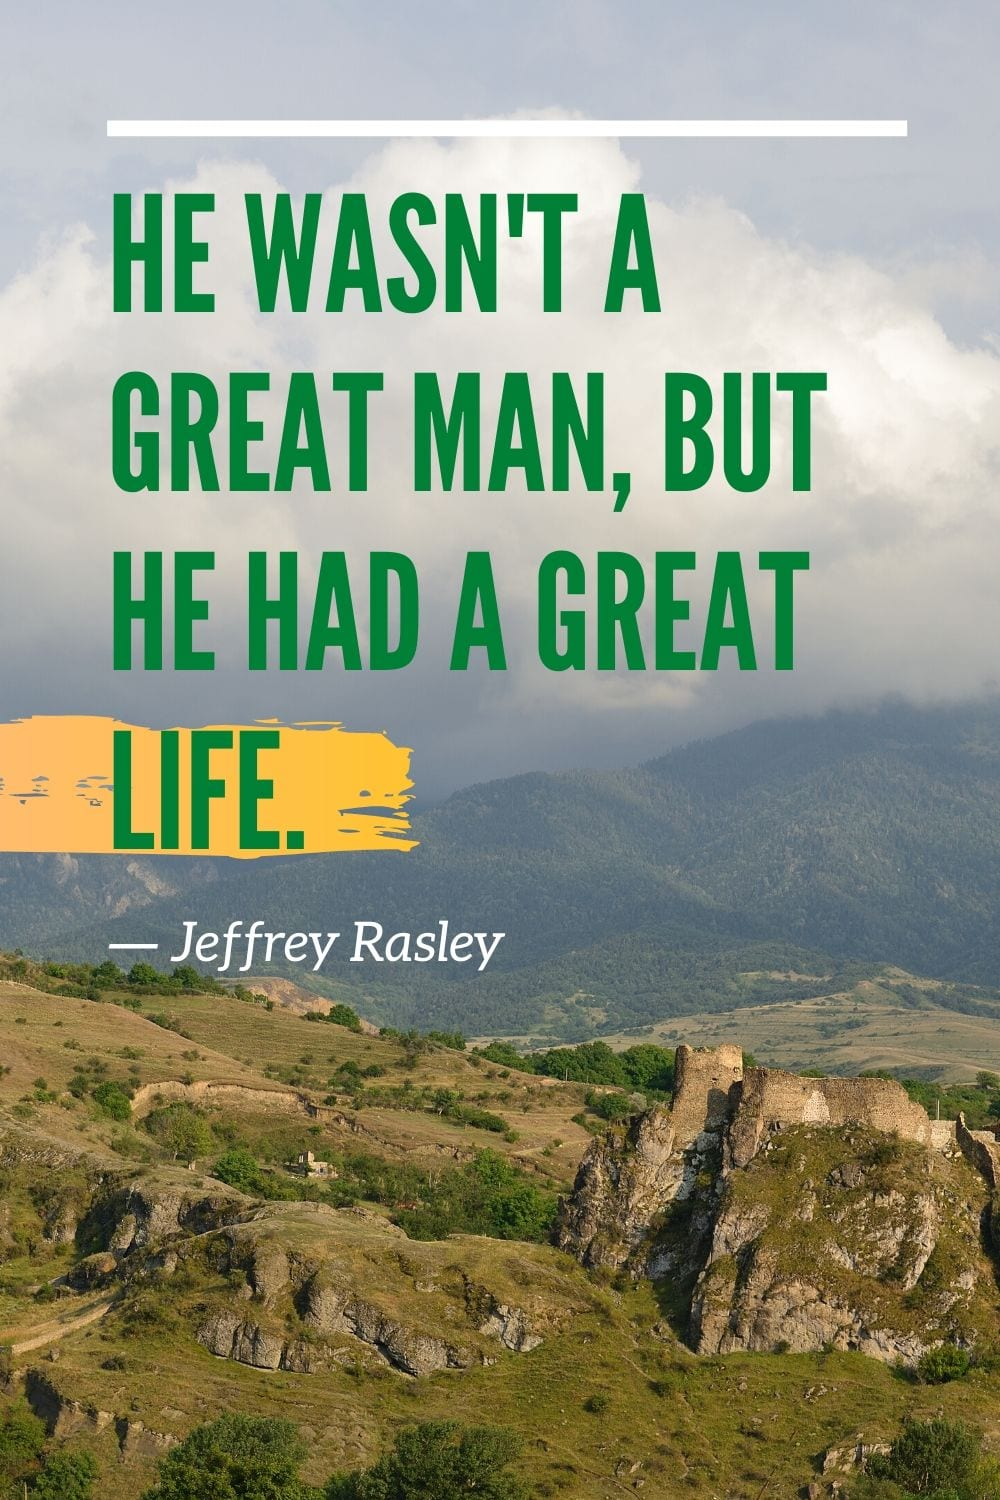 Inspirational Quotes - He wasn't a great man, but he had a great life.